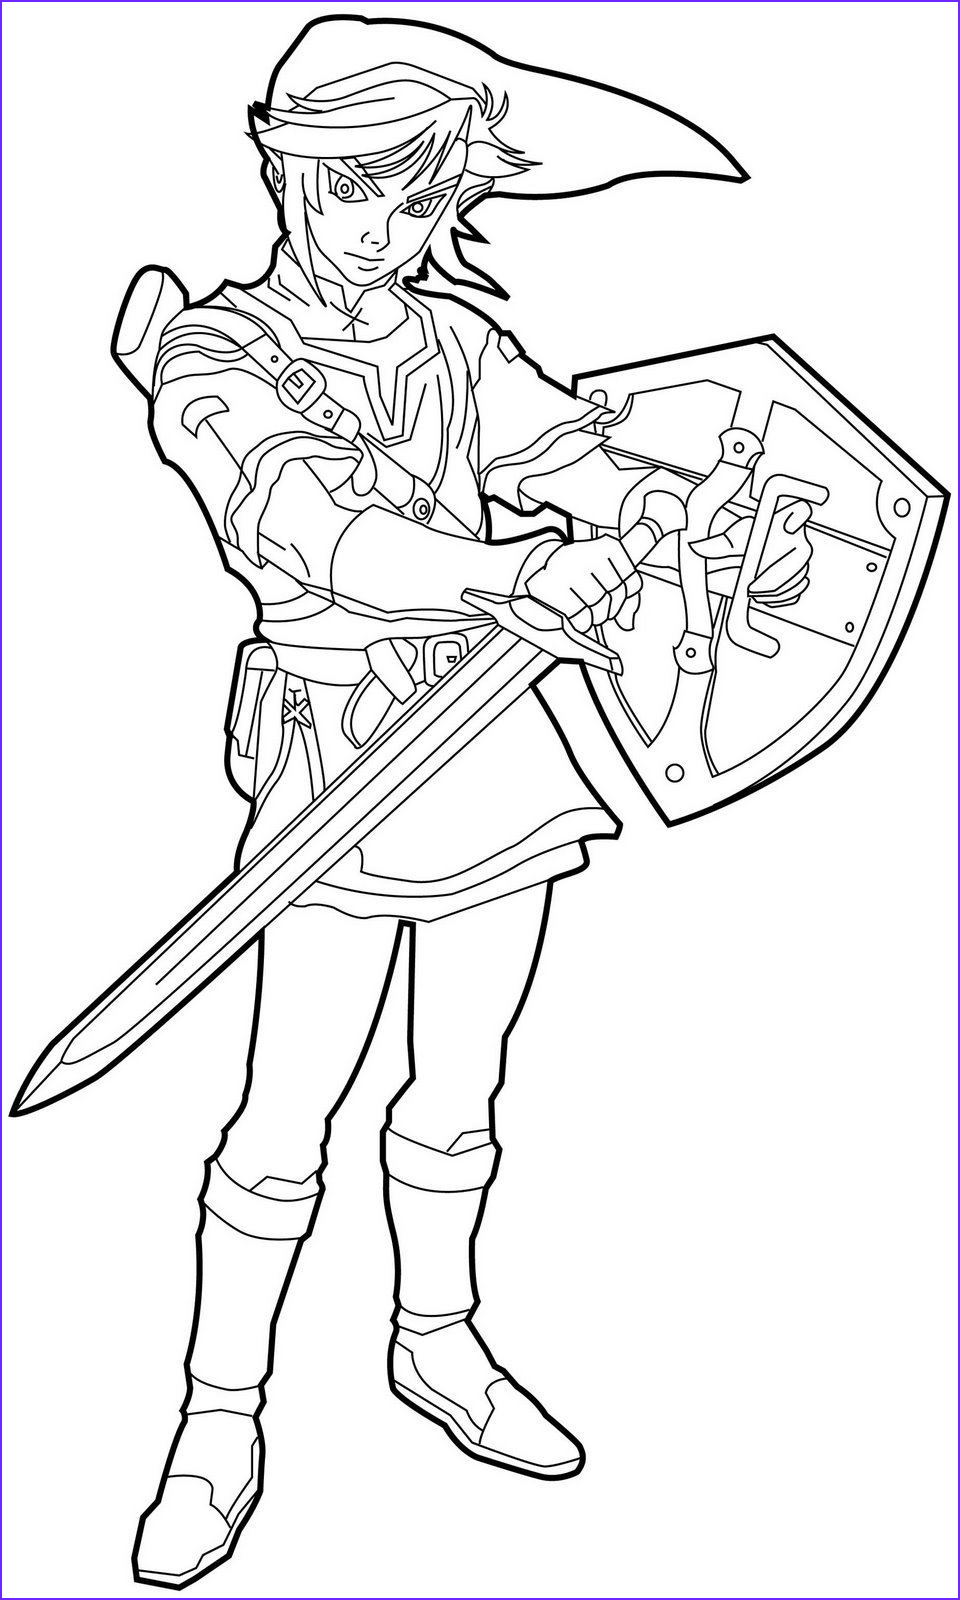 Link Coloring Pages Cool Gallery Free Printable Zelda Coloring Pages for Kids